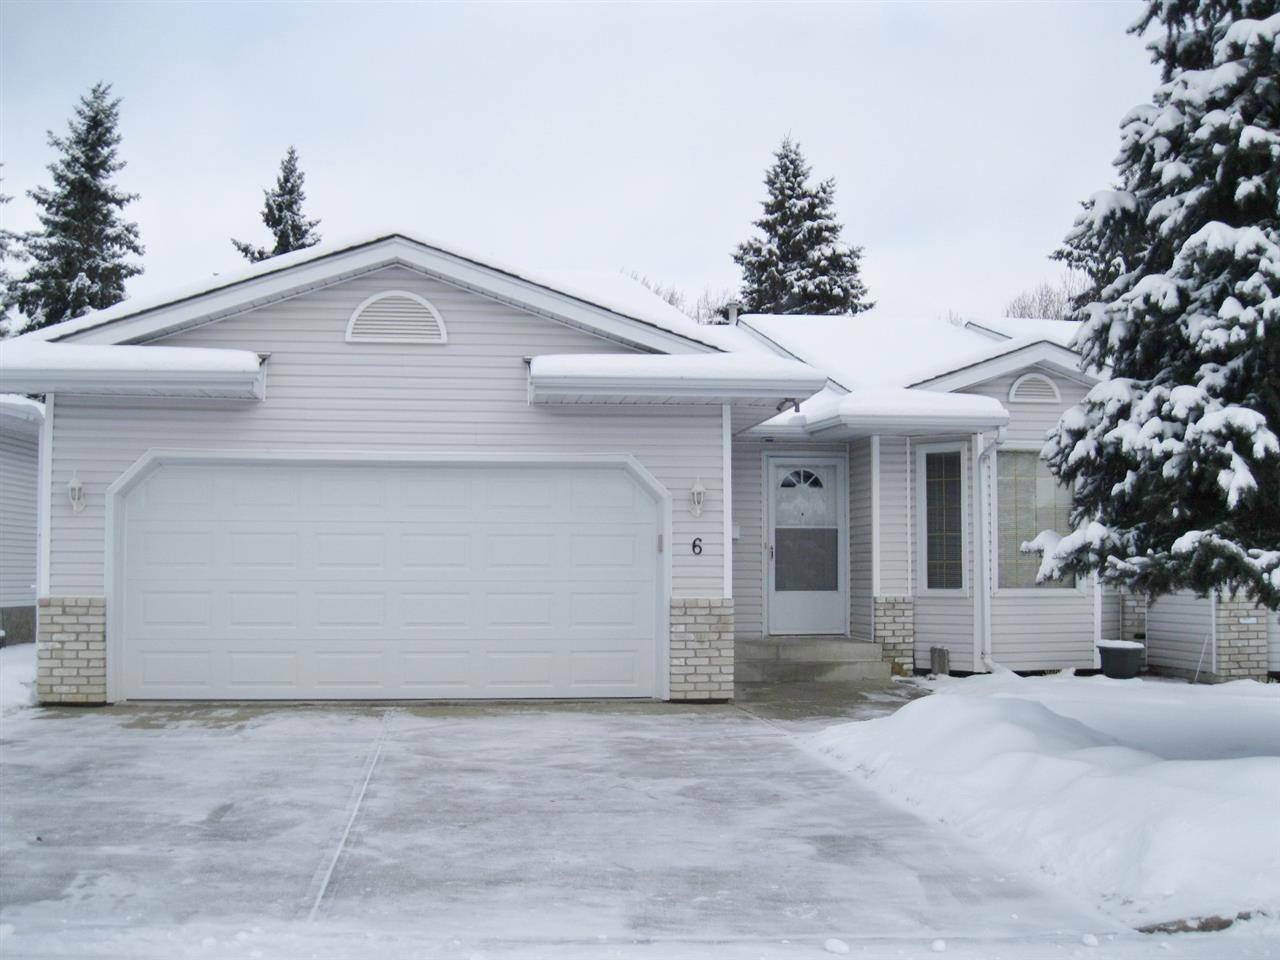 Townhouse for sale at 2 Fieldstone Dr Unit 6 Spruce Grove Alberta - MLS: E4178724